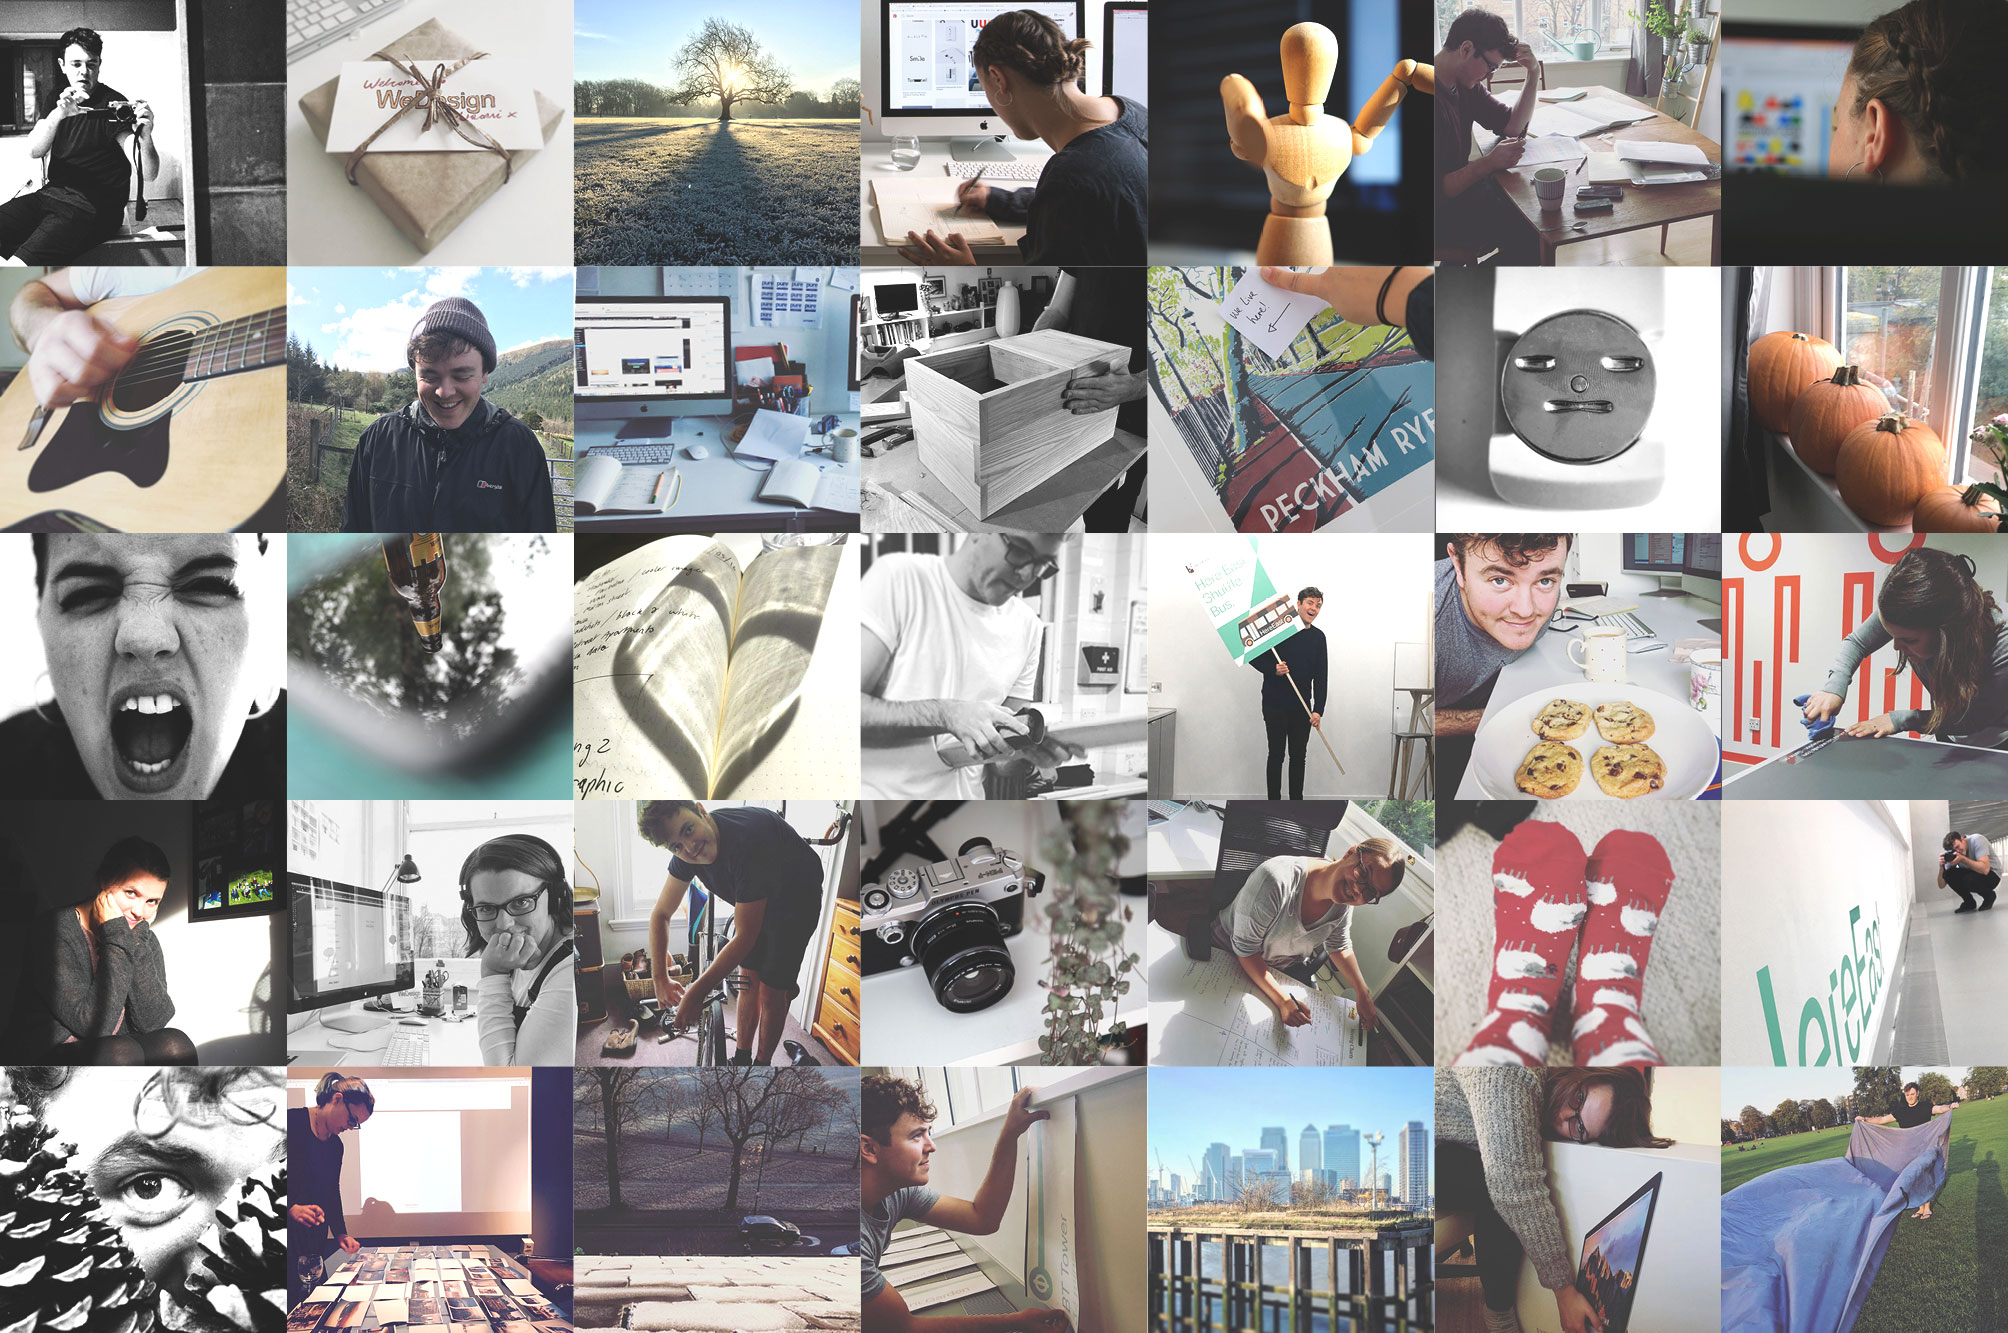 Montage of WeDesign studio pictures